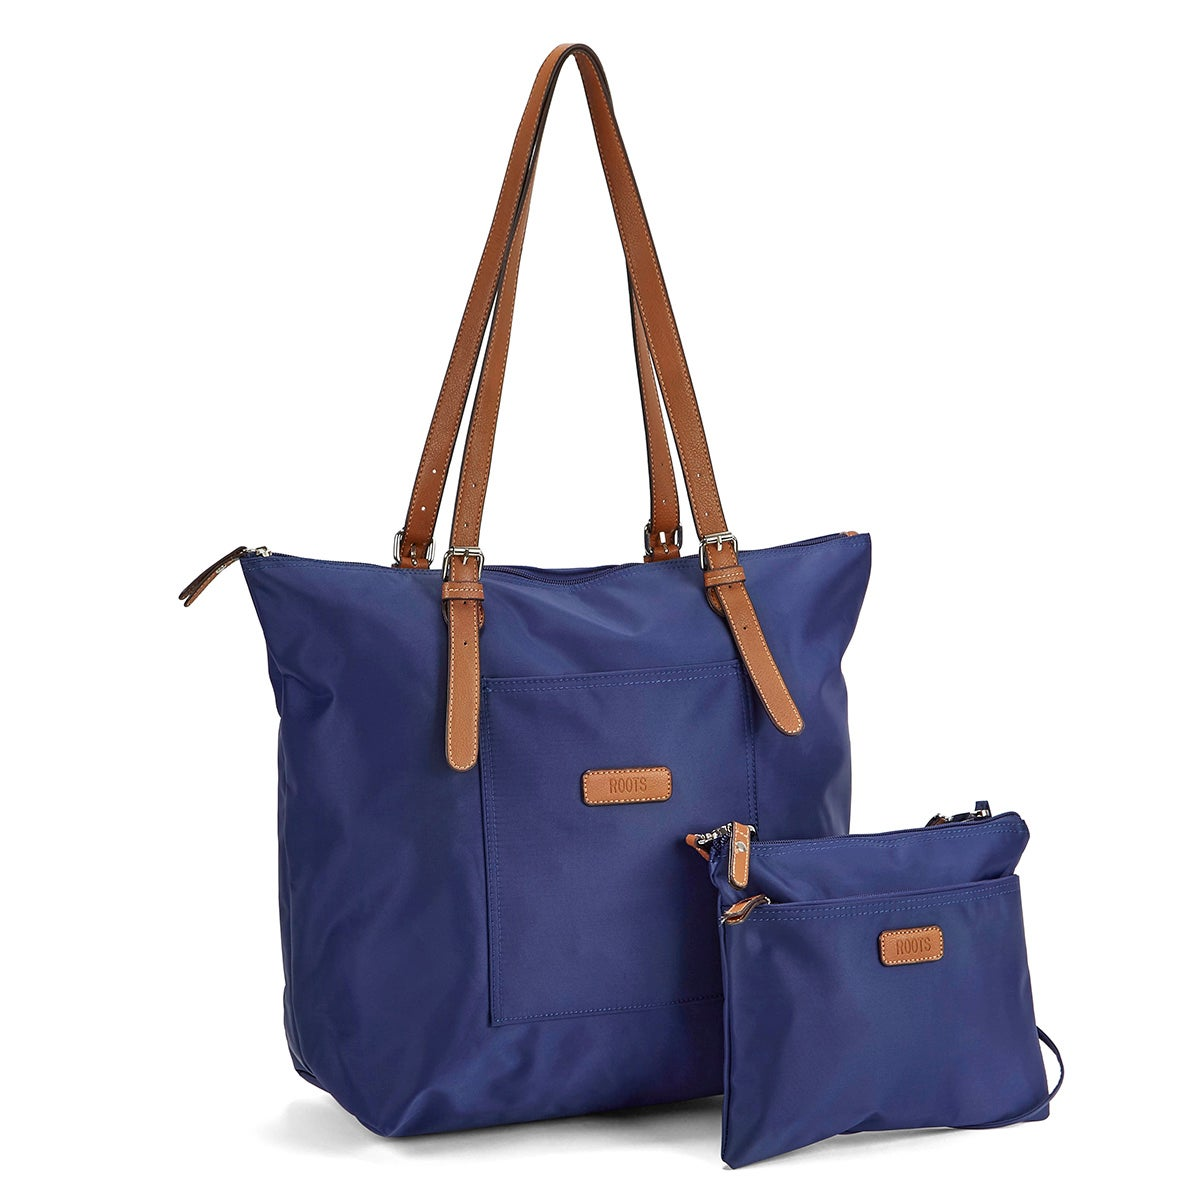 Lds Roots73 navy 2 in 1 tote bag